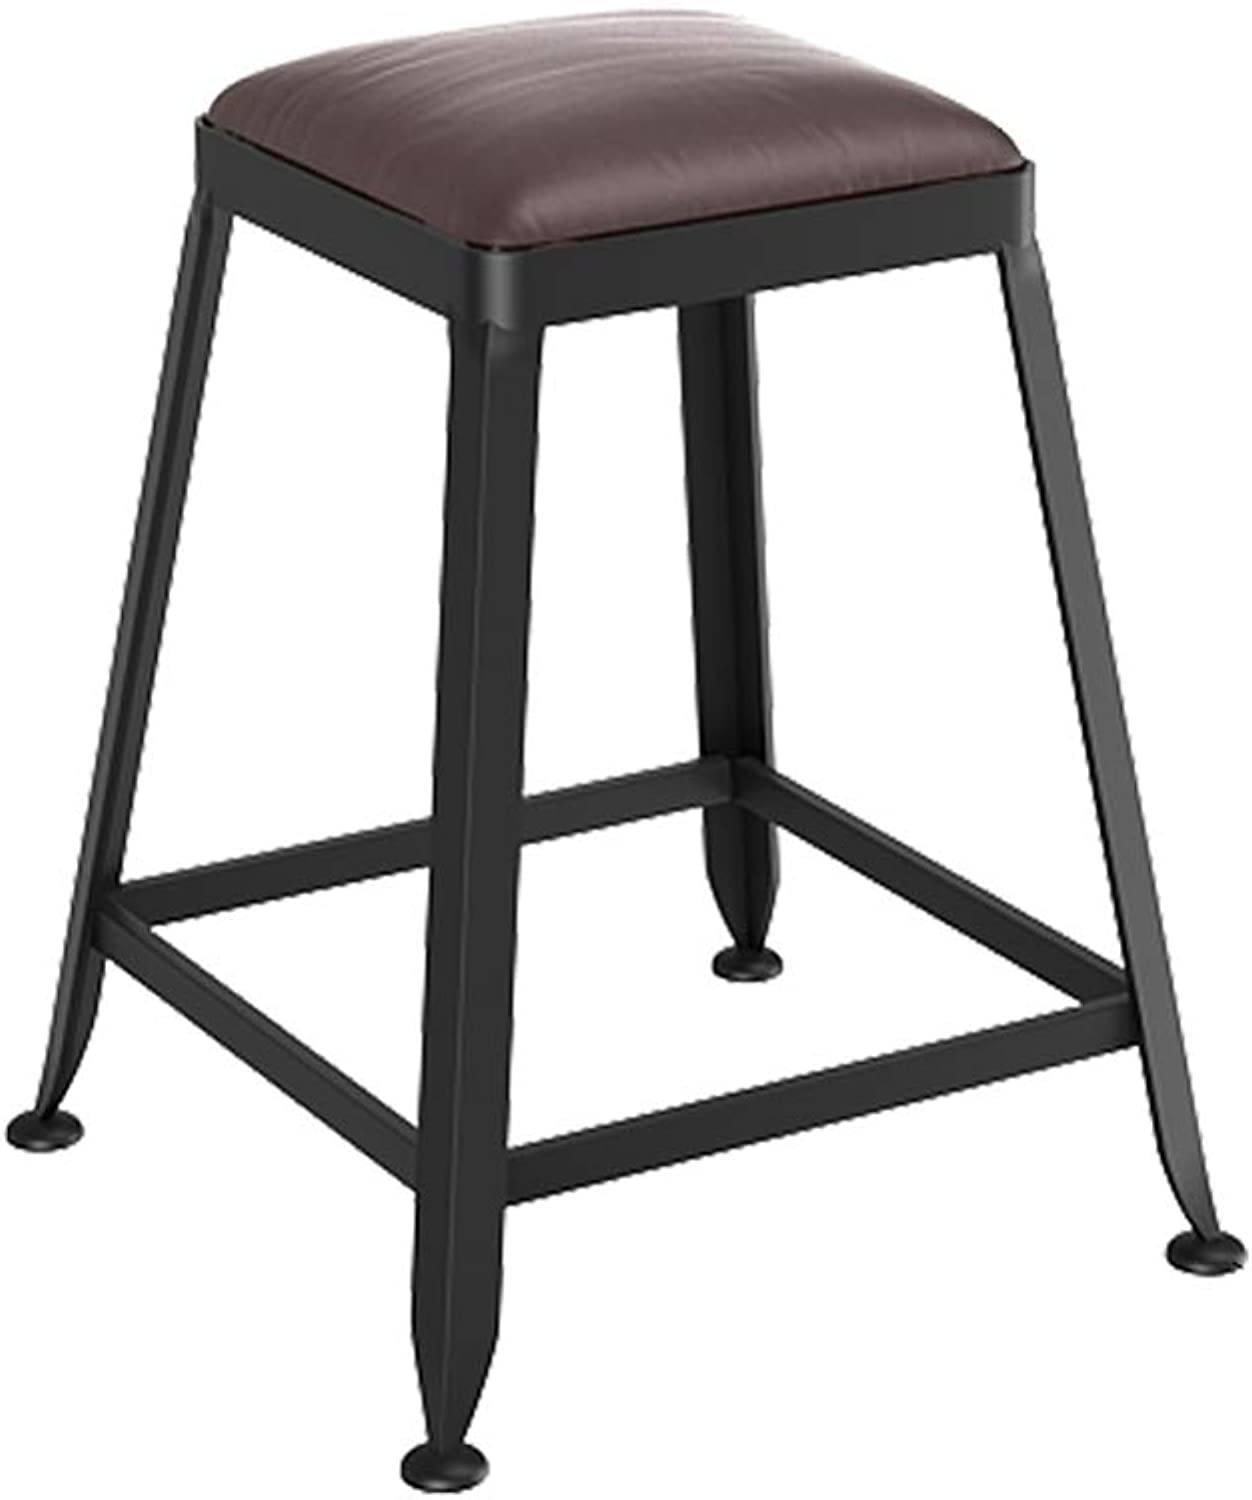 Aidriney- European Bar Stools Solid Wood Wrought Iron Bar Stool Bar Stool Chair High Stool Bar Stool (color   E)